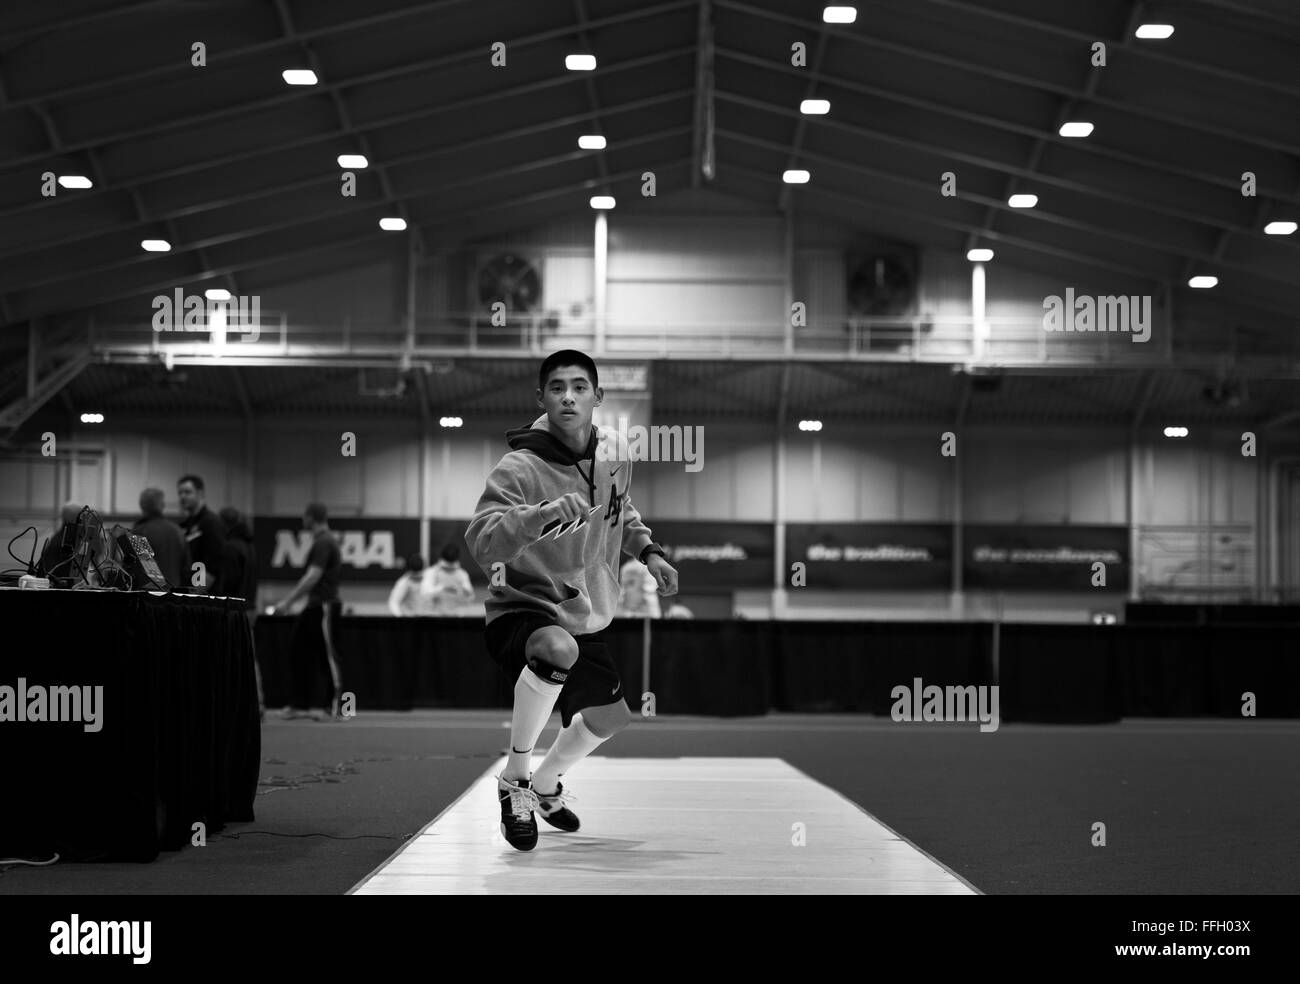 Prior to the start of the 2014 NCAA Fencing Championships, Alexander Chiang works on his form during a warmup period - Stock Image